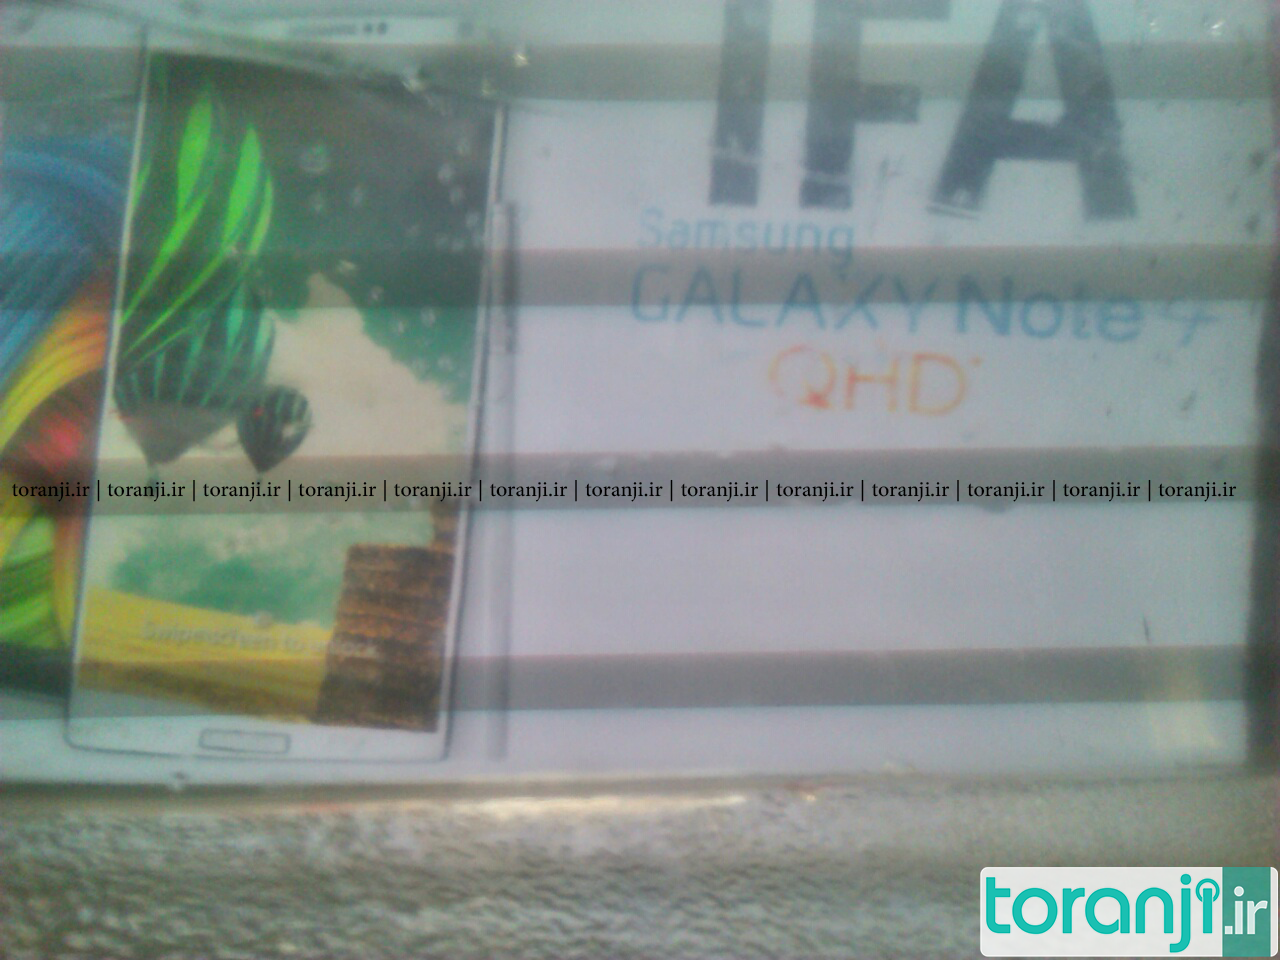 Samsung Galaxy Note 4 IFA Poster Leak